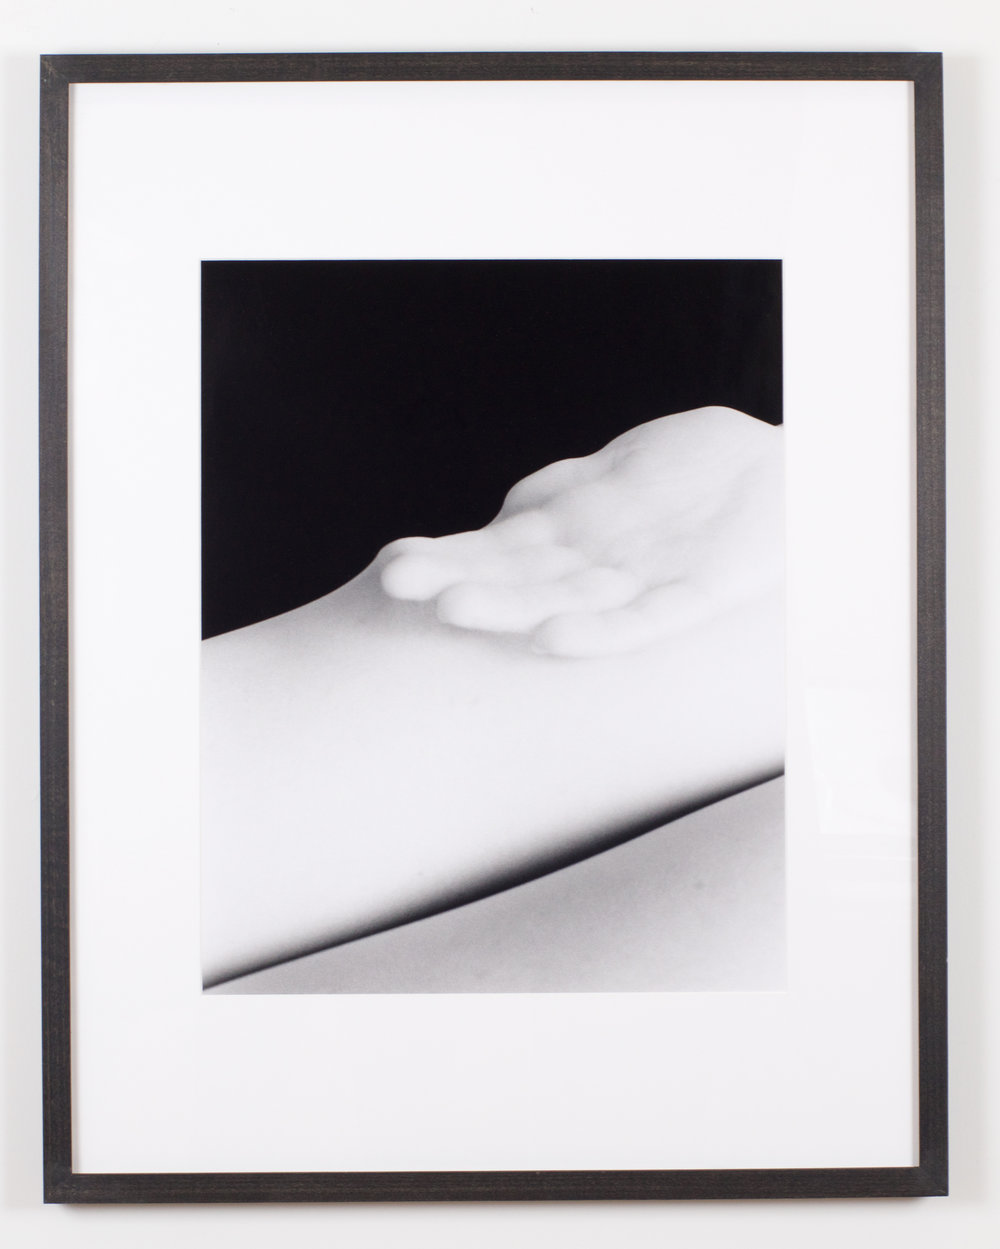 Hand in Tights 2 , 2016, gelatin silver print, 24 x 30 inches framed